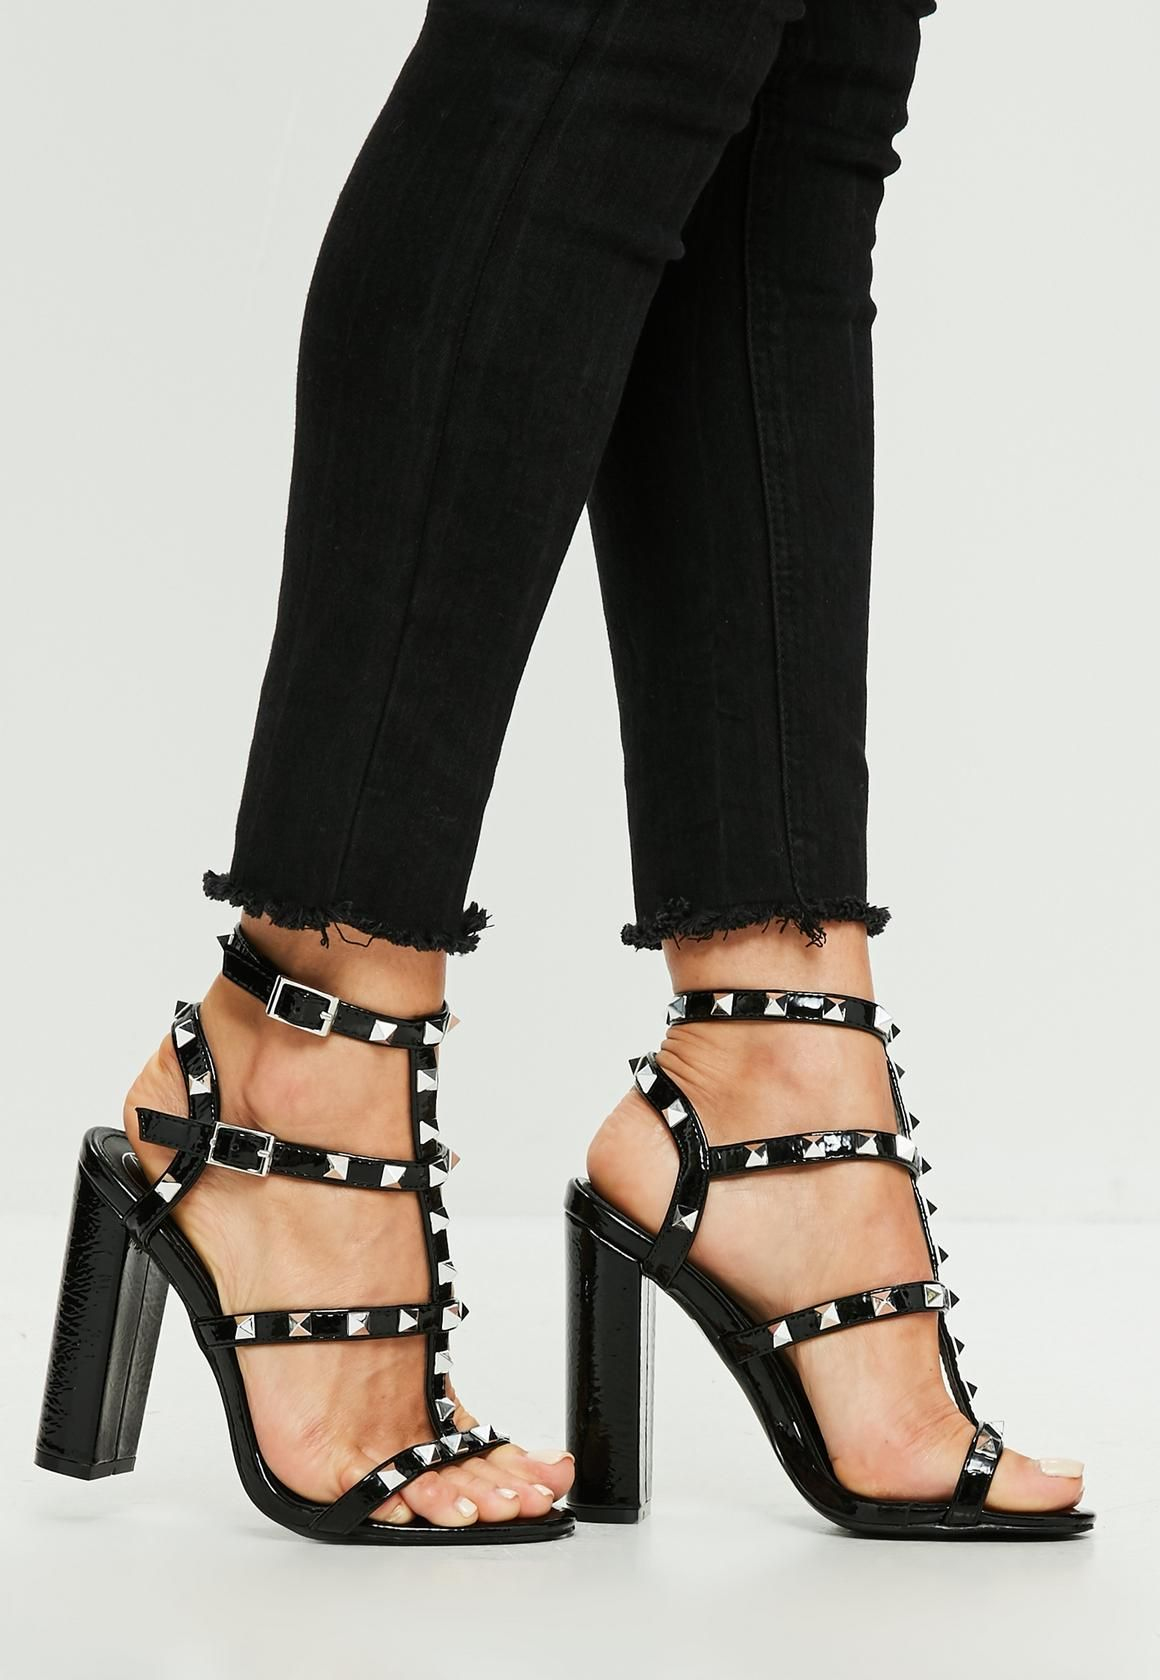 321bd6f91 Missguided - Black Vinyl Stud Gladiator Sandals